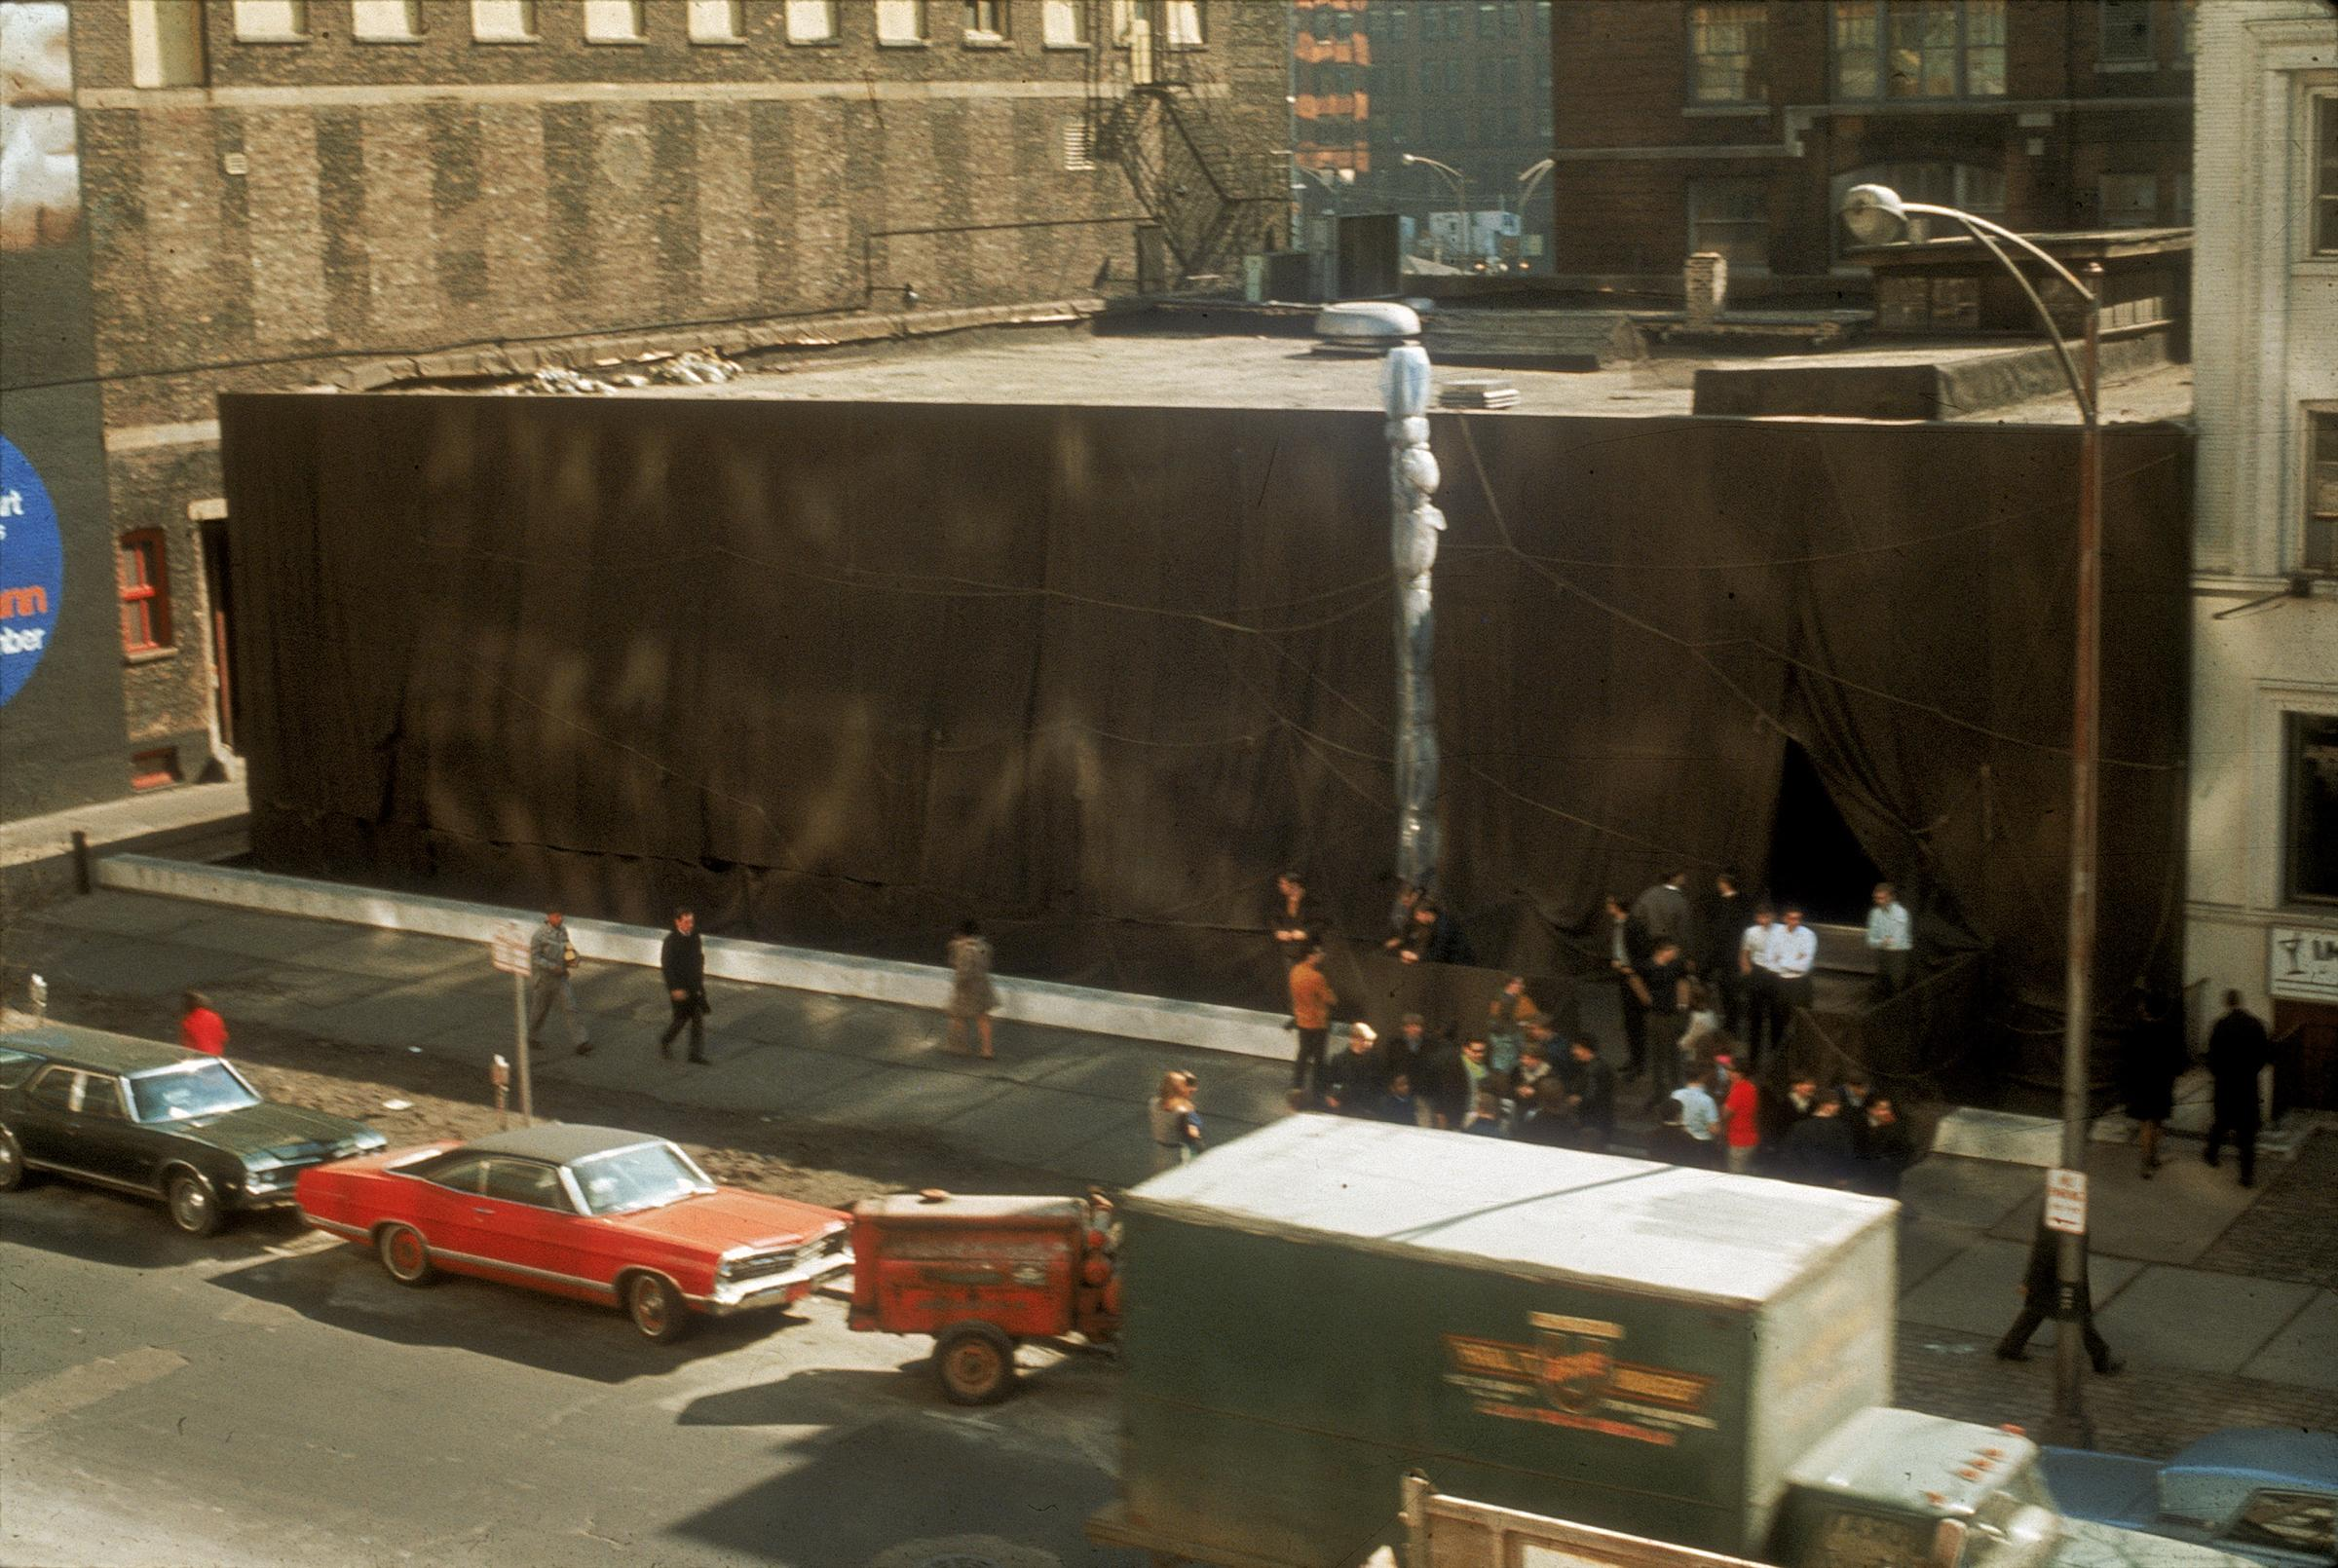 A street view photograph with people on the sidewalk looking at a building wrapped in fabric; cars are parked along the street in the foreground